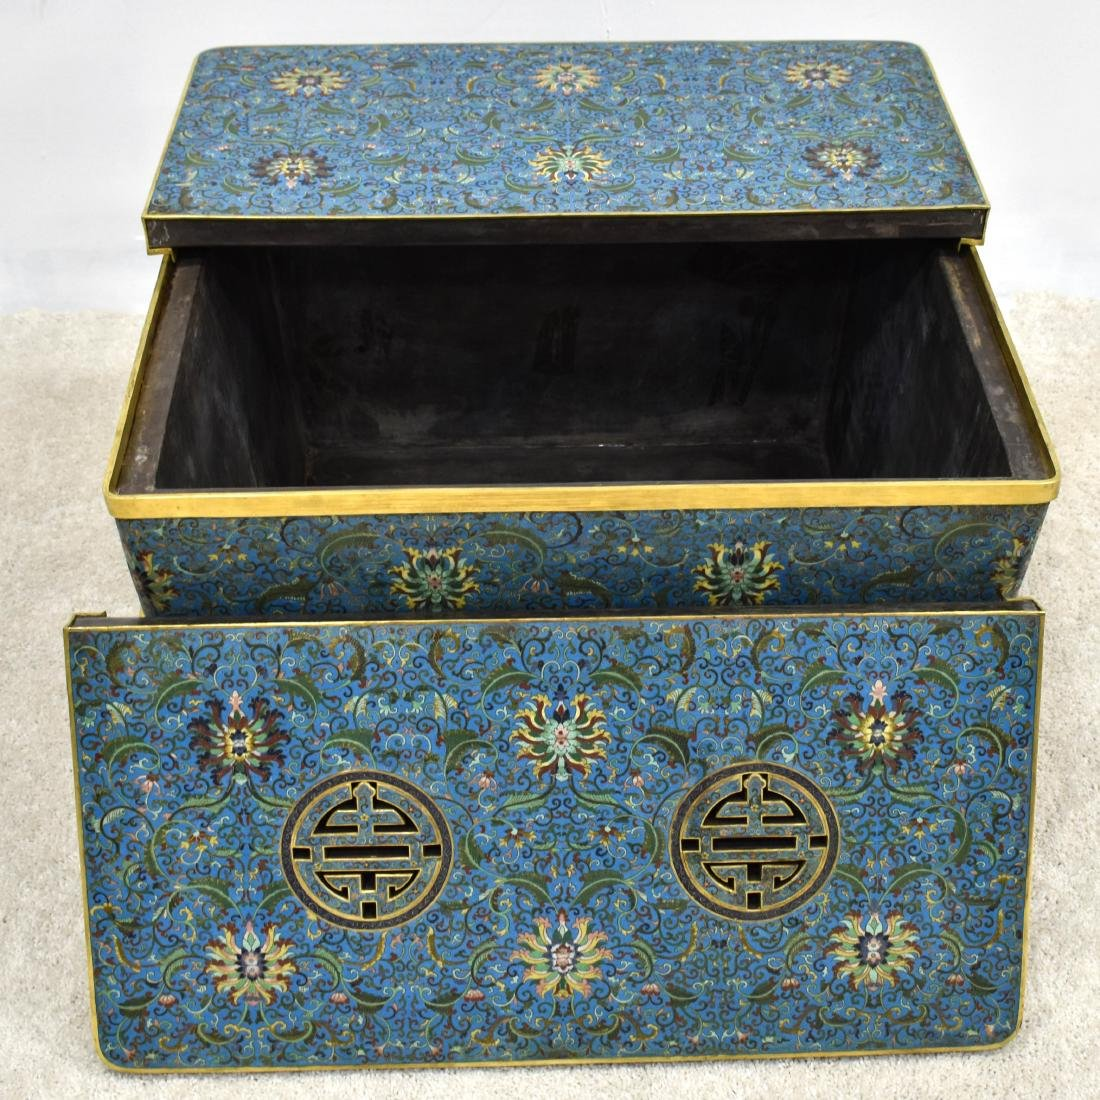 LARGE GILT BRONZE CLOISONNE ICE CHEST - 3